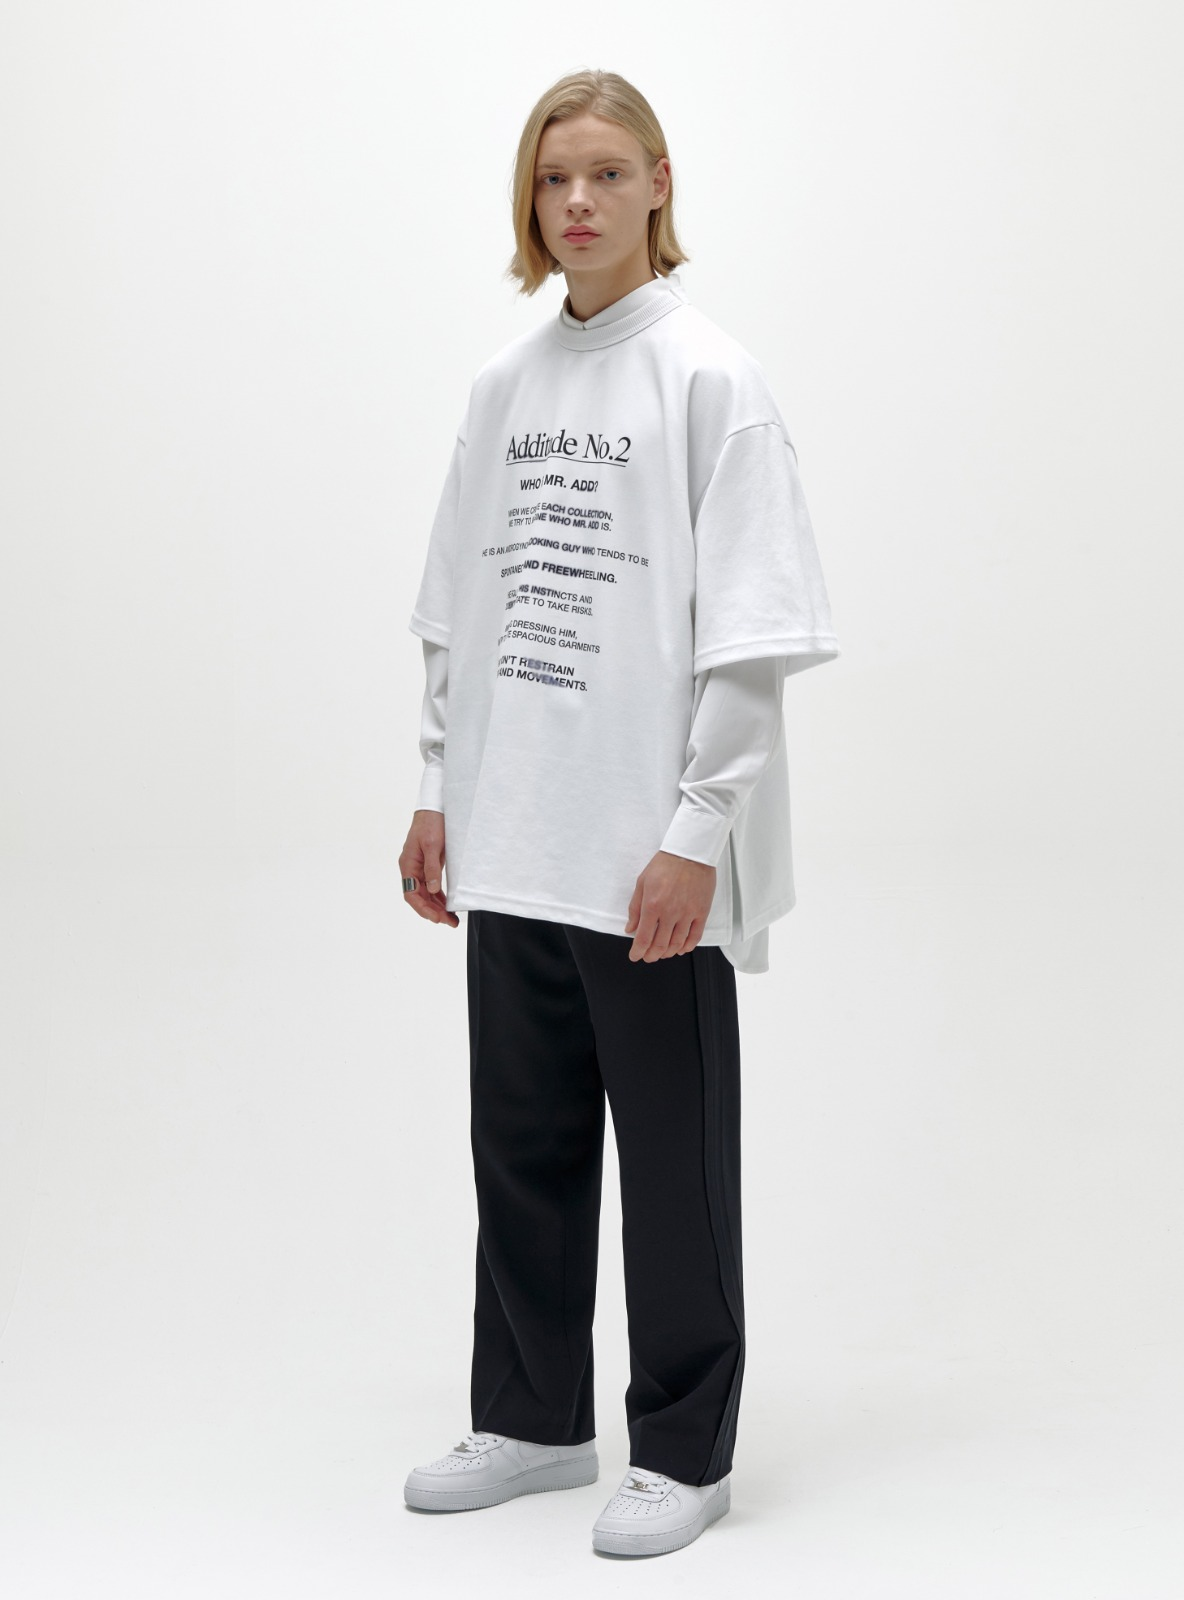 ADDITUDE No.2 AVANTGARDE T-SHIRT WHITE